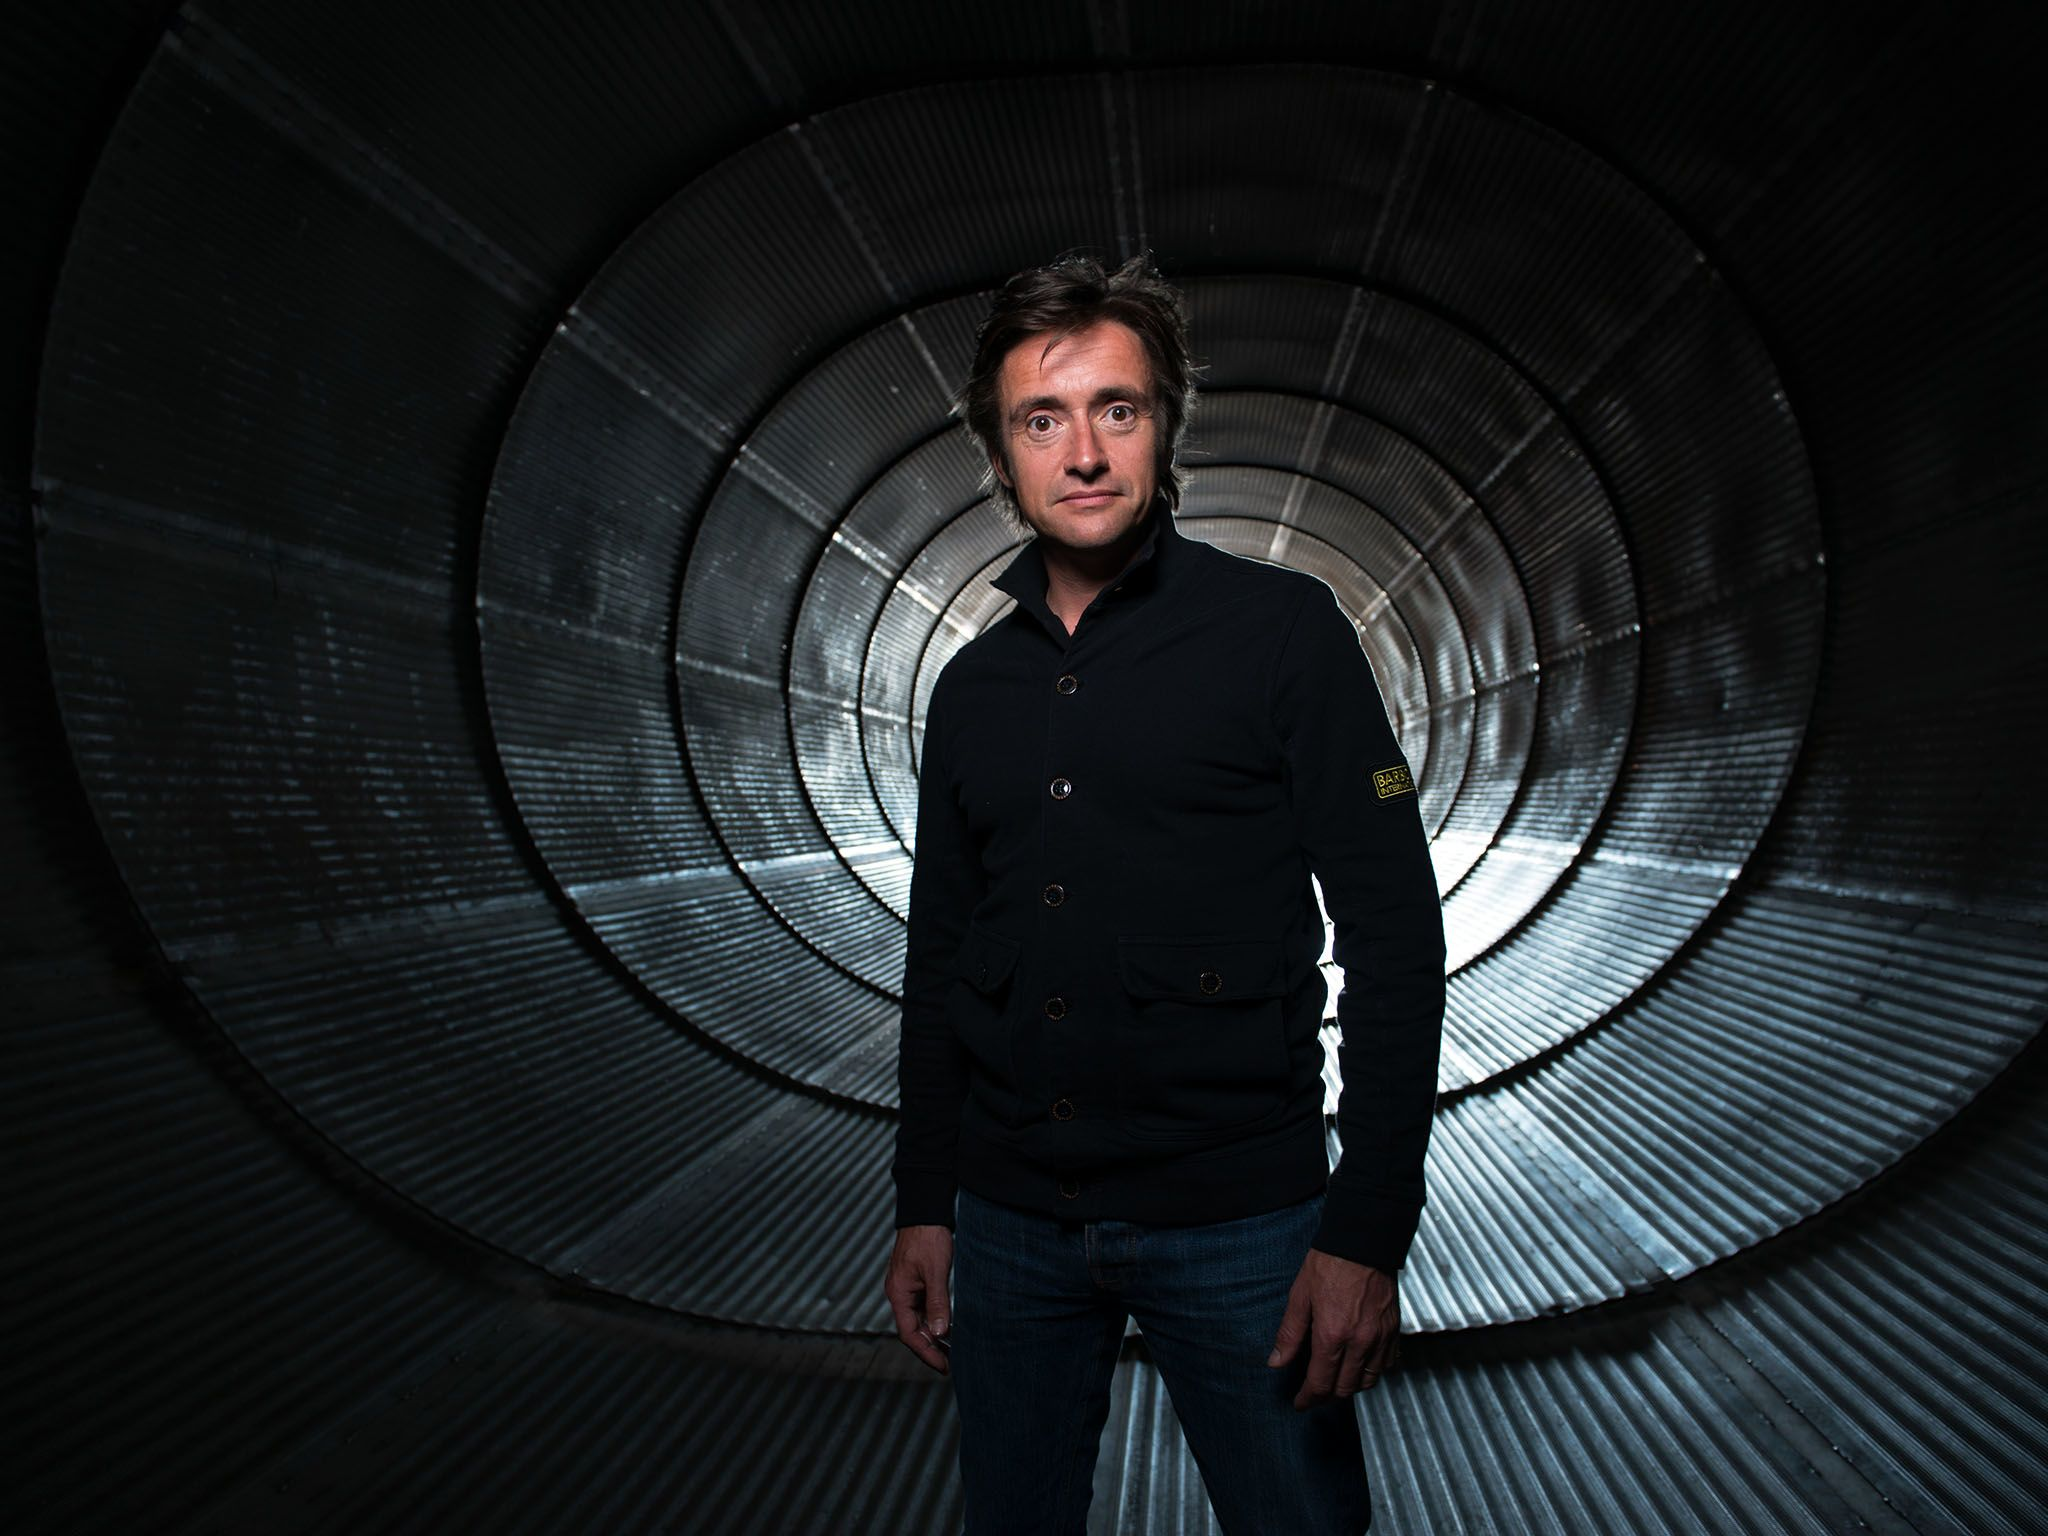 Host Richard Hammond. This image is from Richard Hammond's Wildest Weather. [Photo of the day - August 2015]